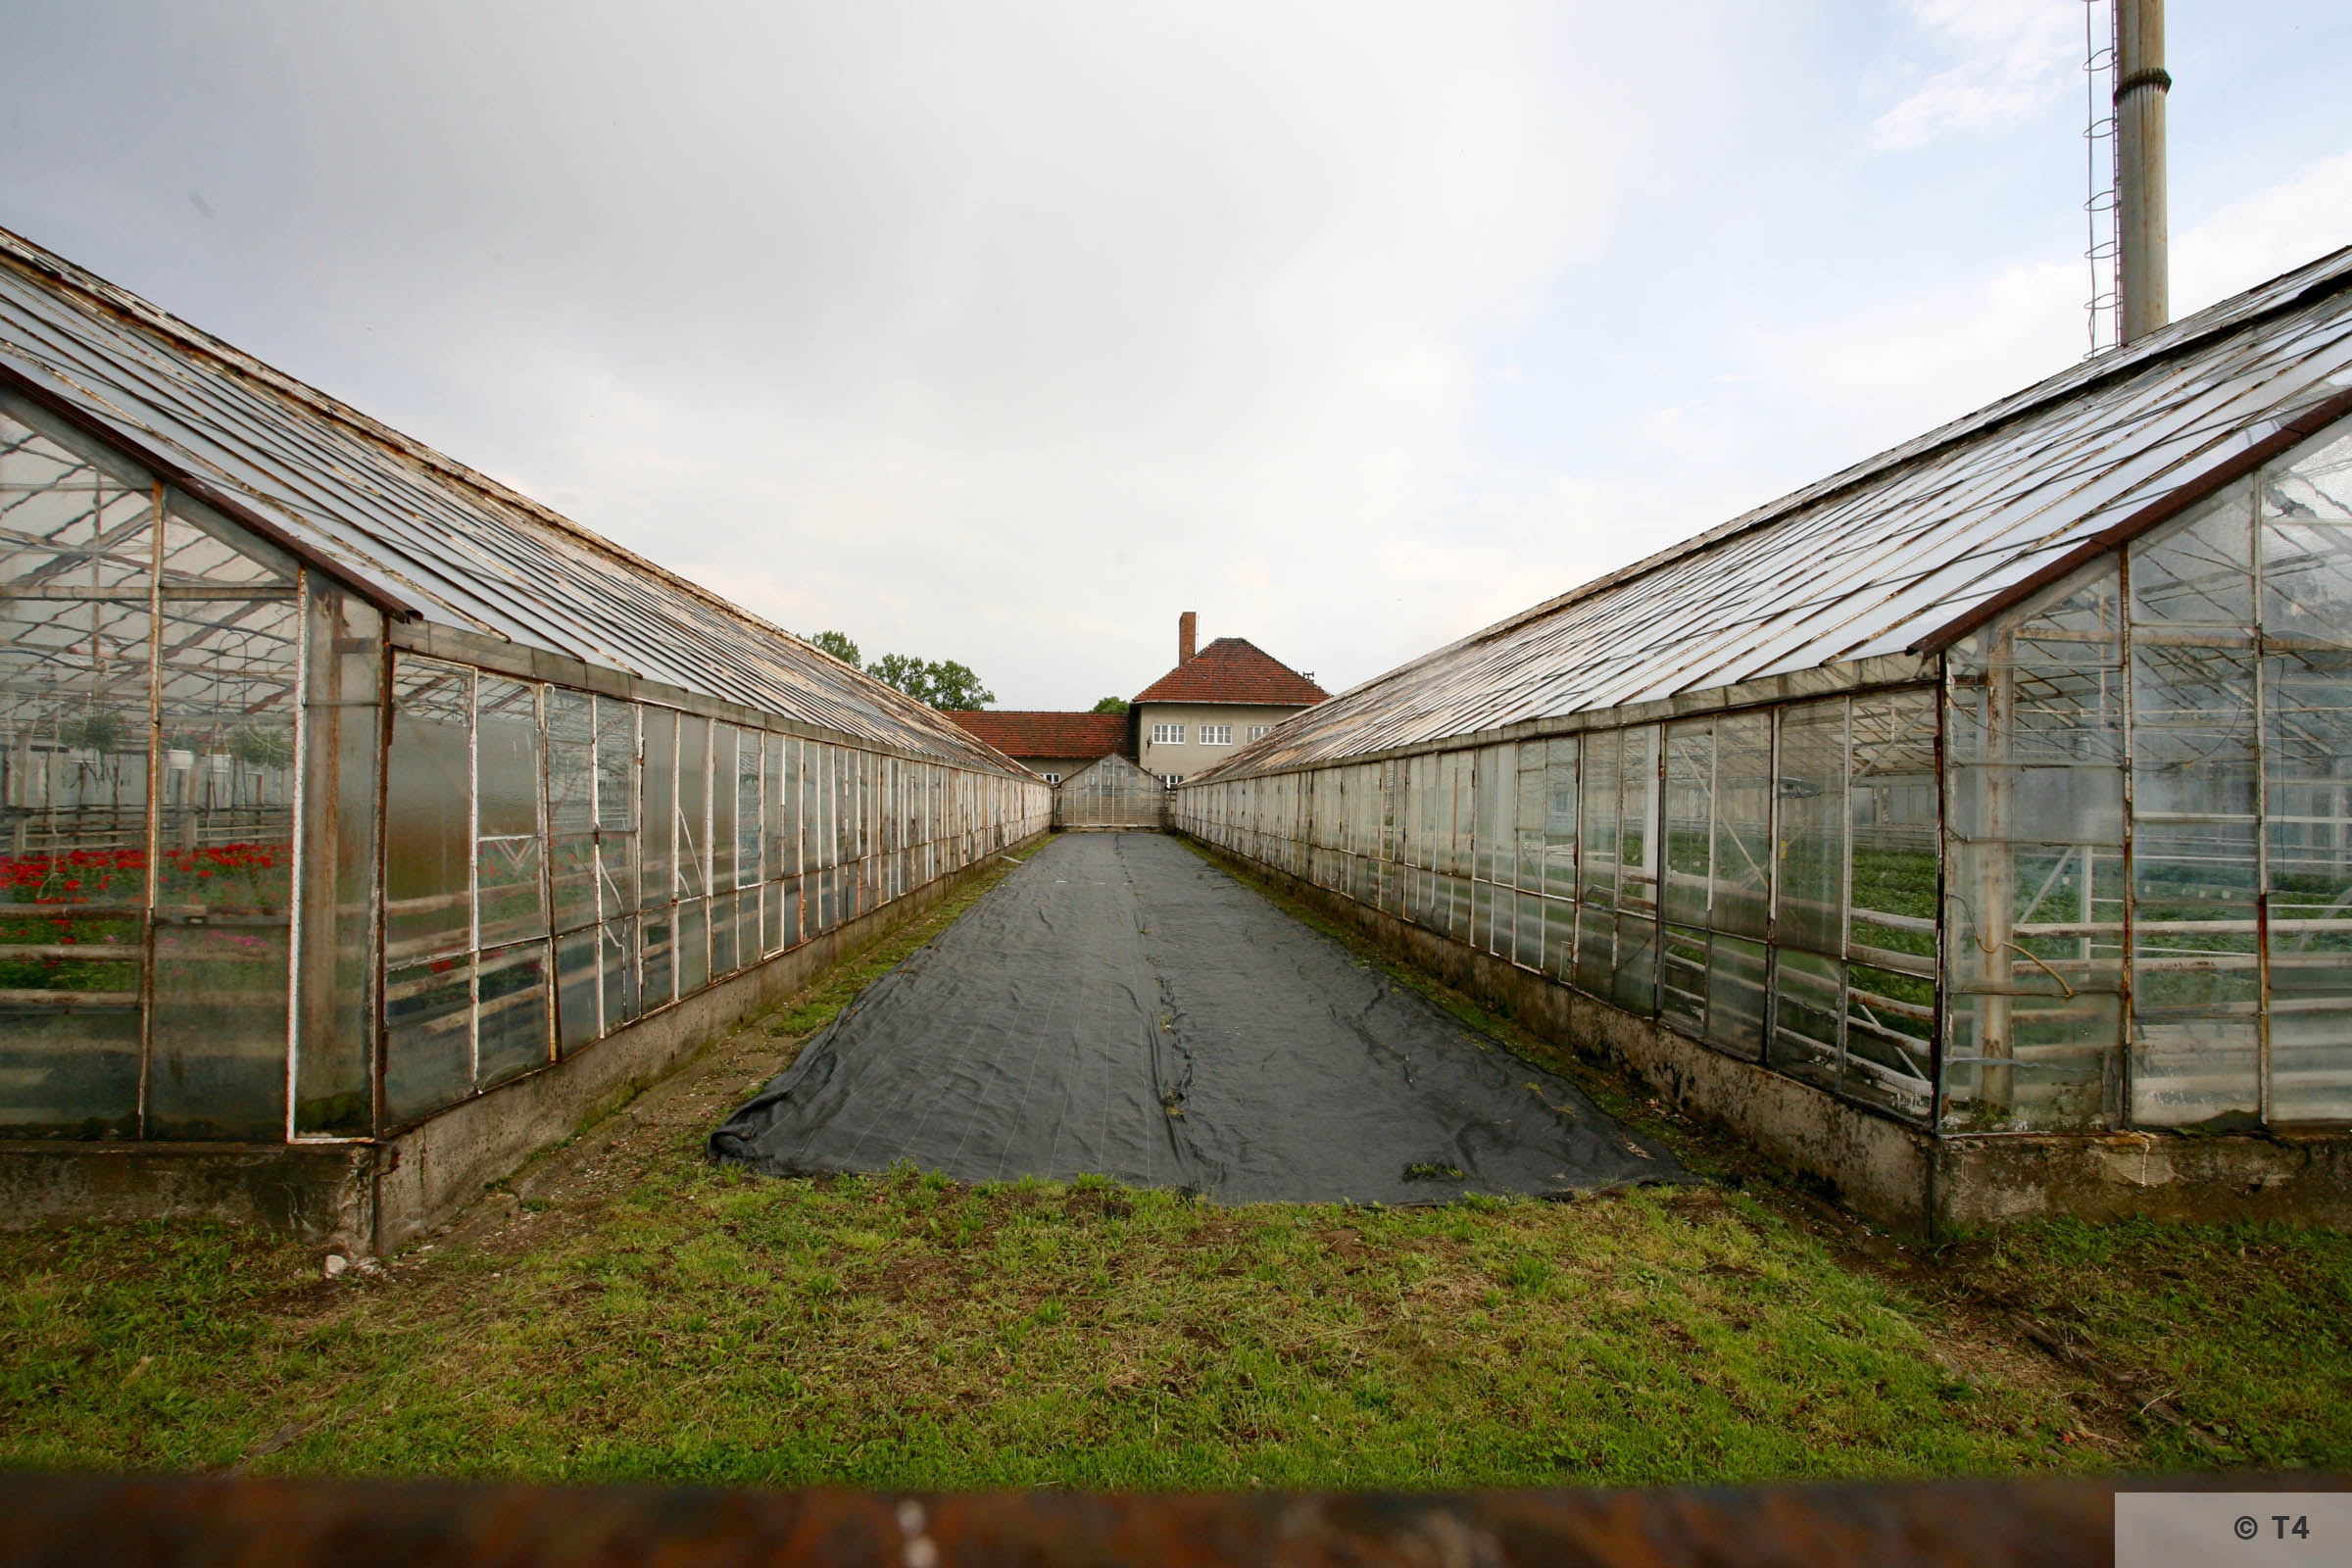 New greenhouses. Horticultural laboratory in the background. 2006 T4 5051